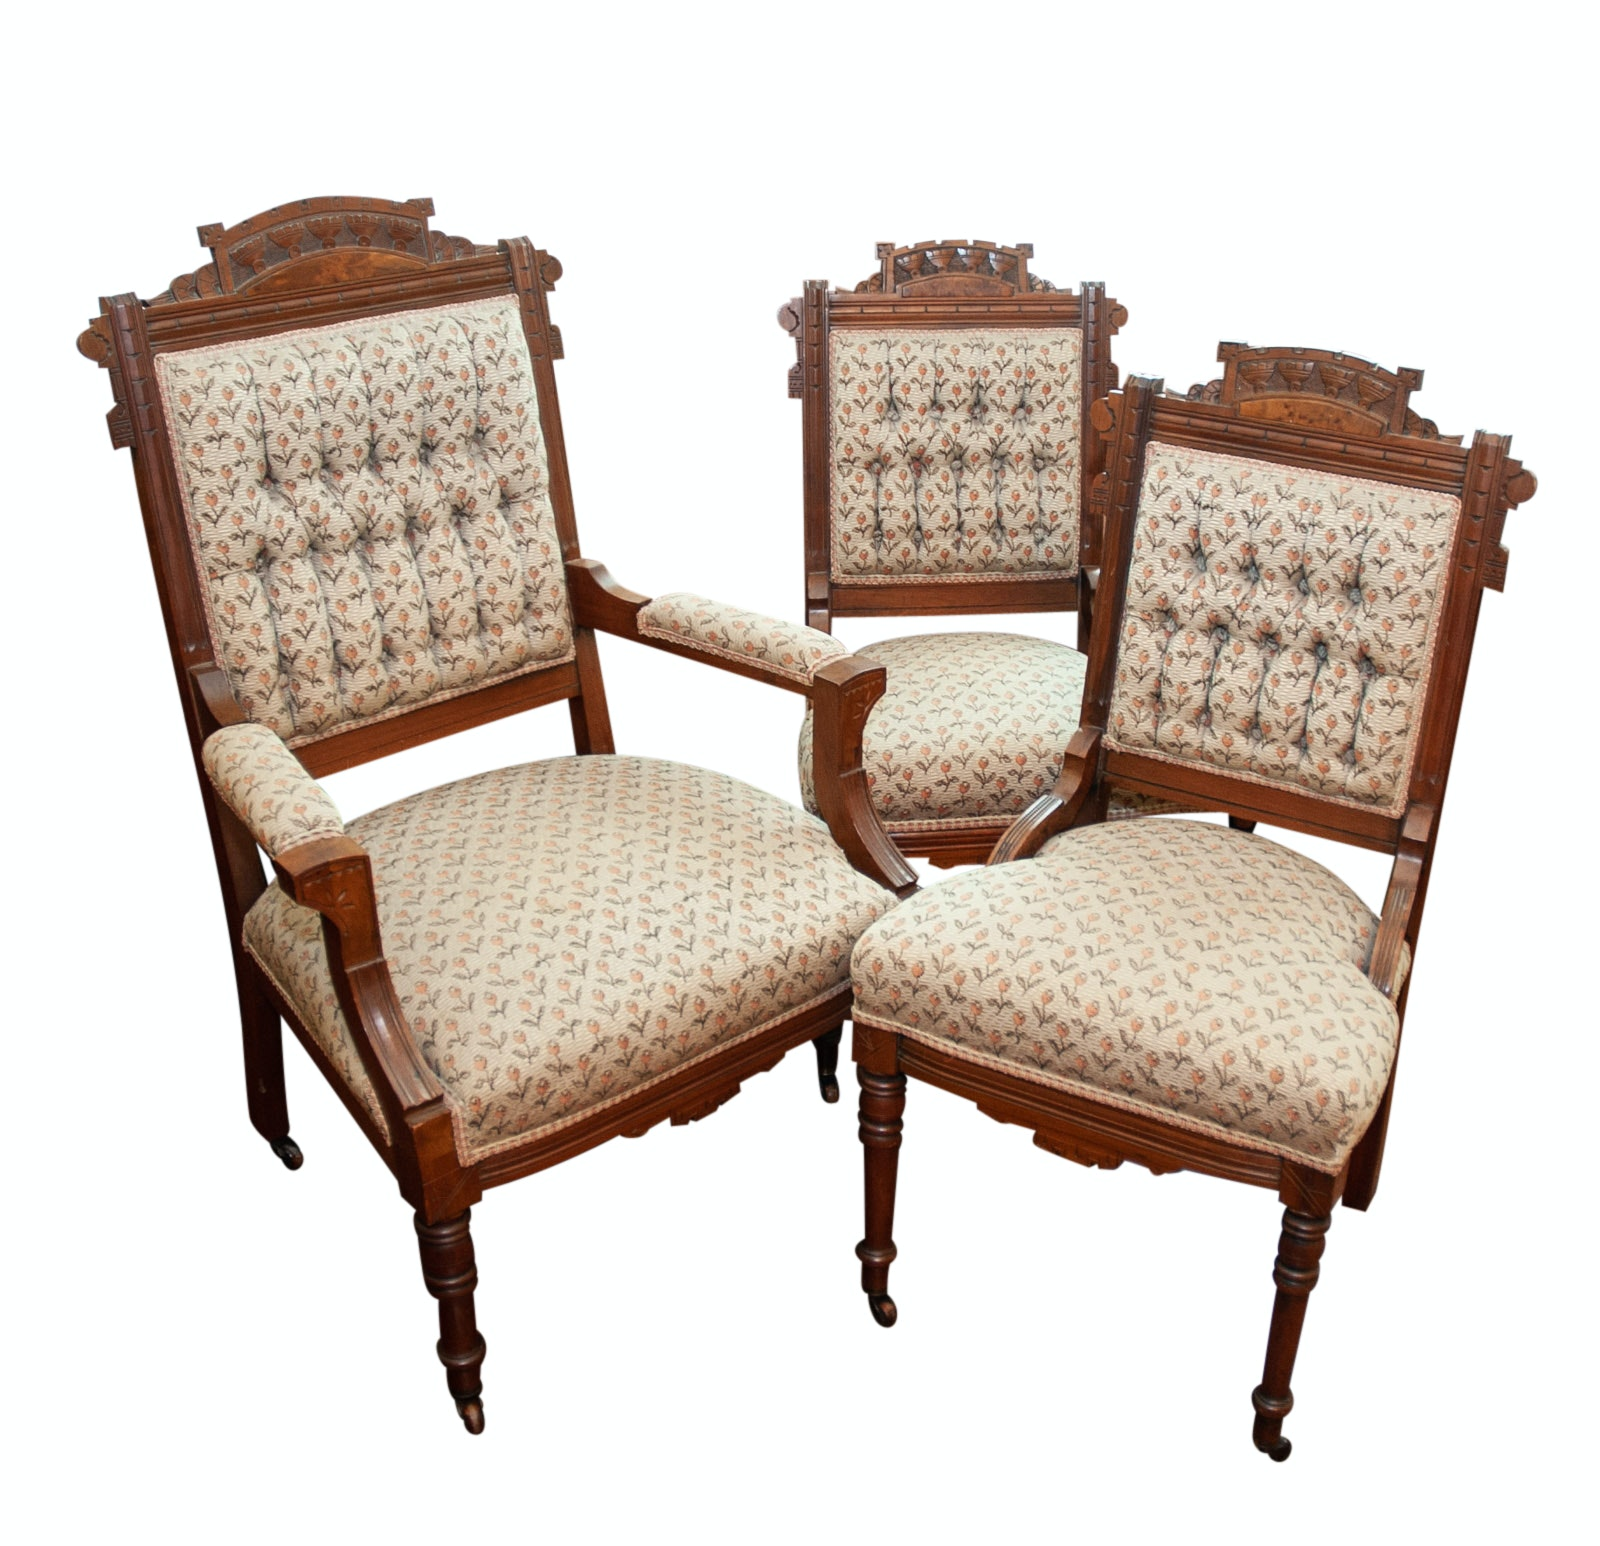 Antique Walnut Eastlake Parlor Chairs